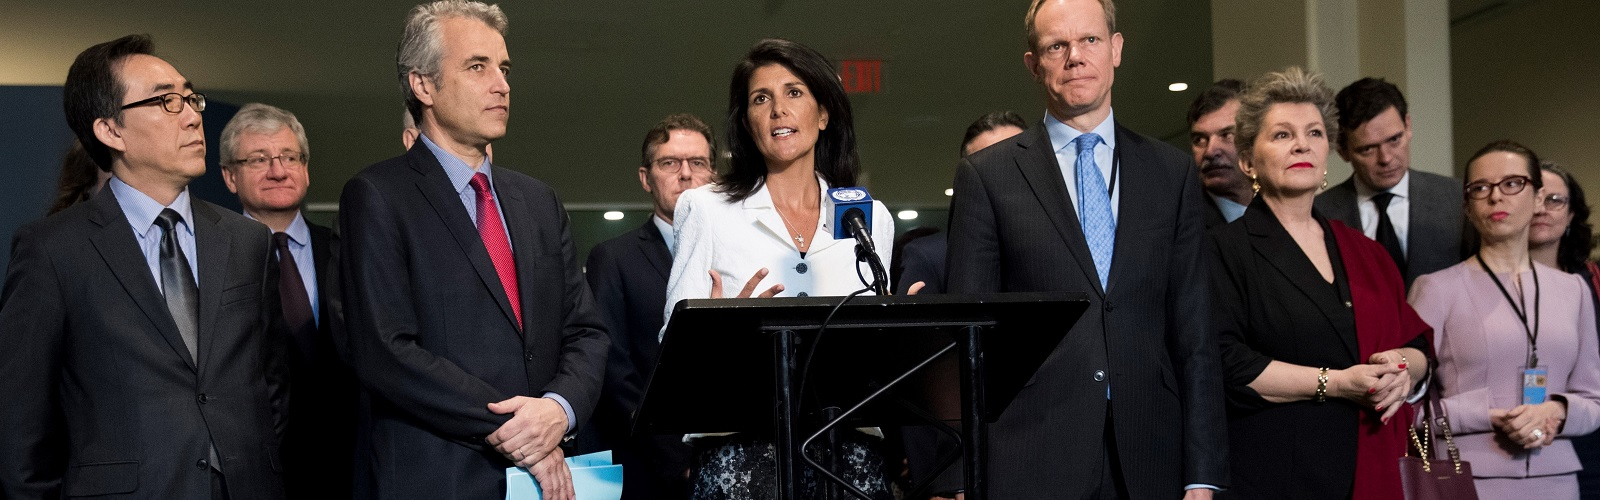 United in their isolation: The US UN Ambassador Nikki Haley with representatives of other nations opposing the nuclear ban treaty on 27 March (Photo: Drew Angerer/Getty)